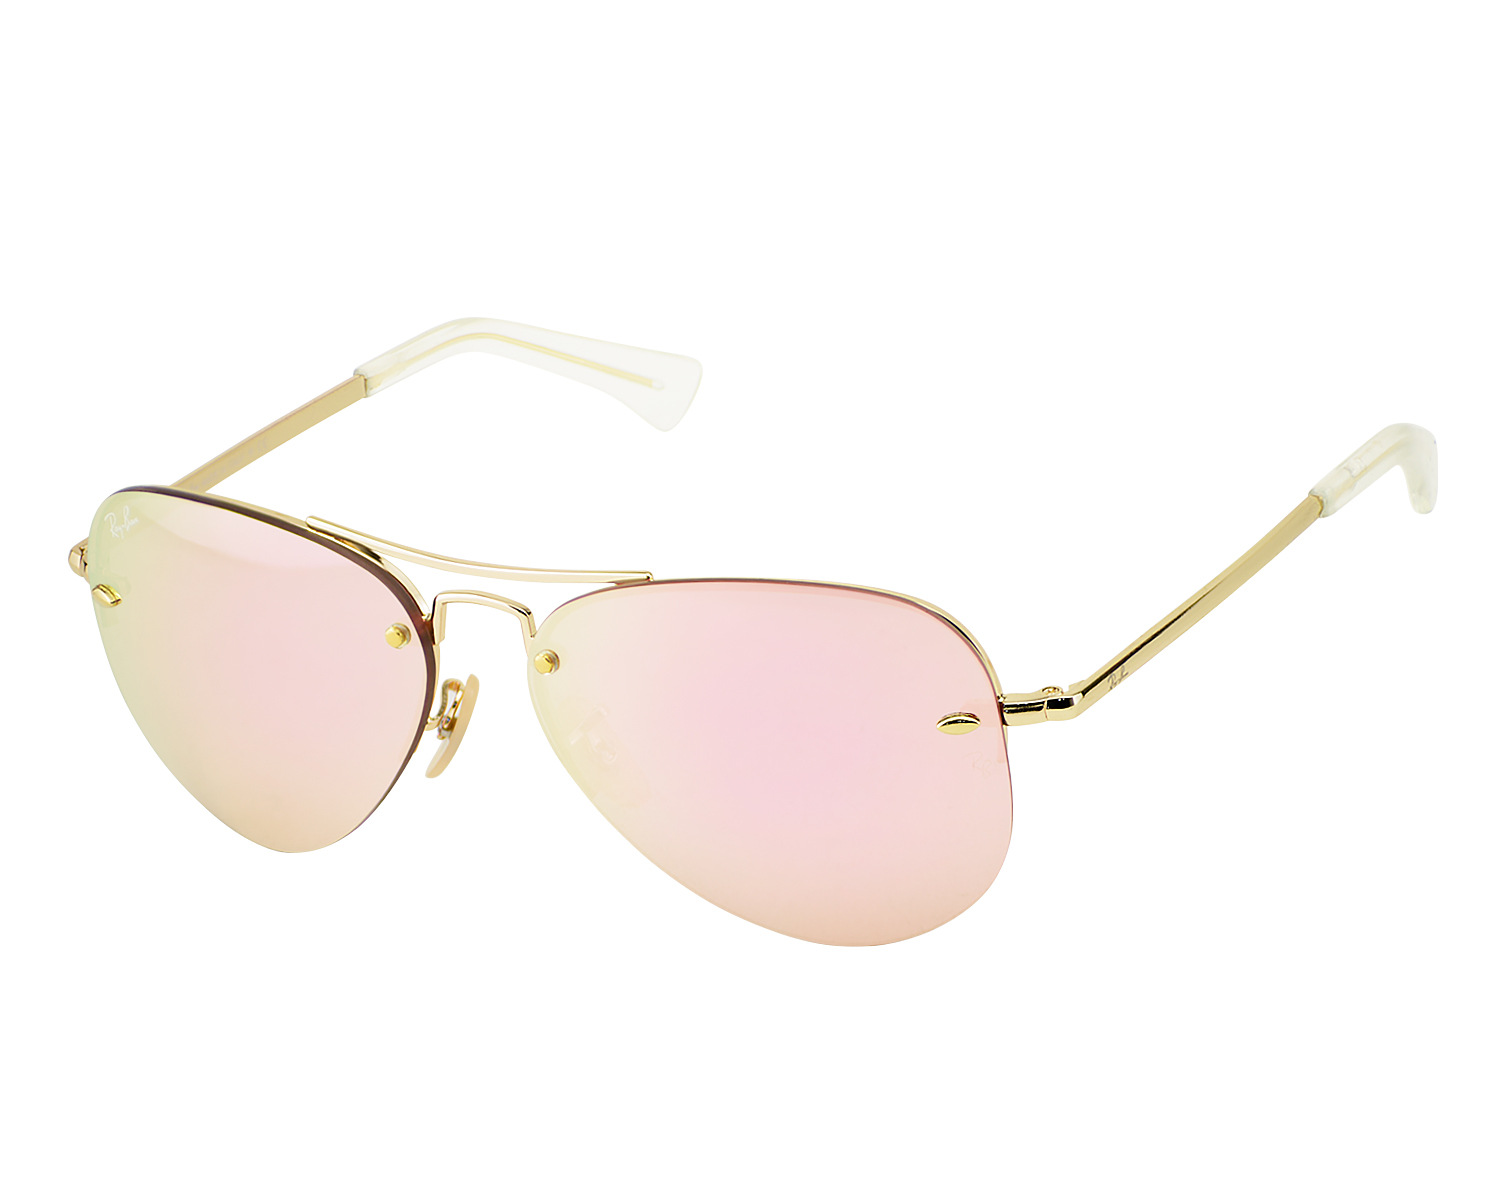 728c659b7a Ray-Ban RB3449 001 E4 Gold Frame Pink Mirror Lenses Unisex Sunglasses 58mm